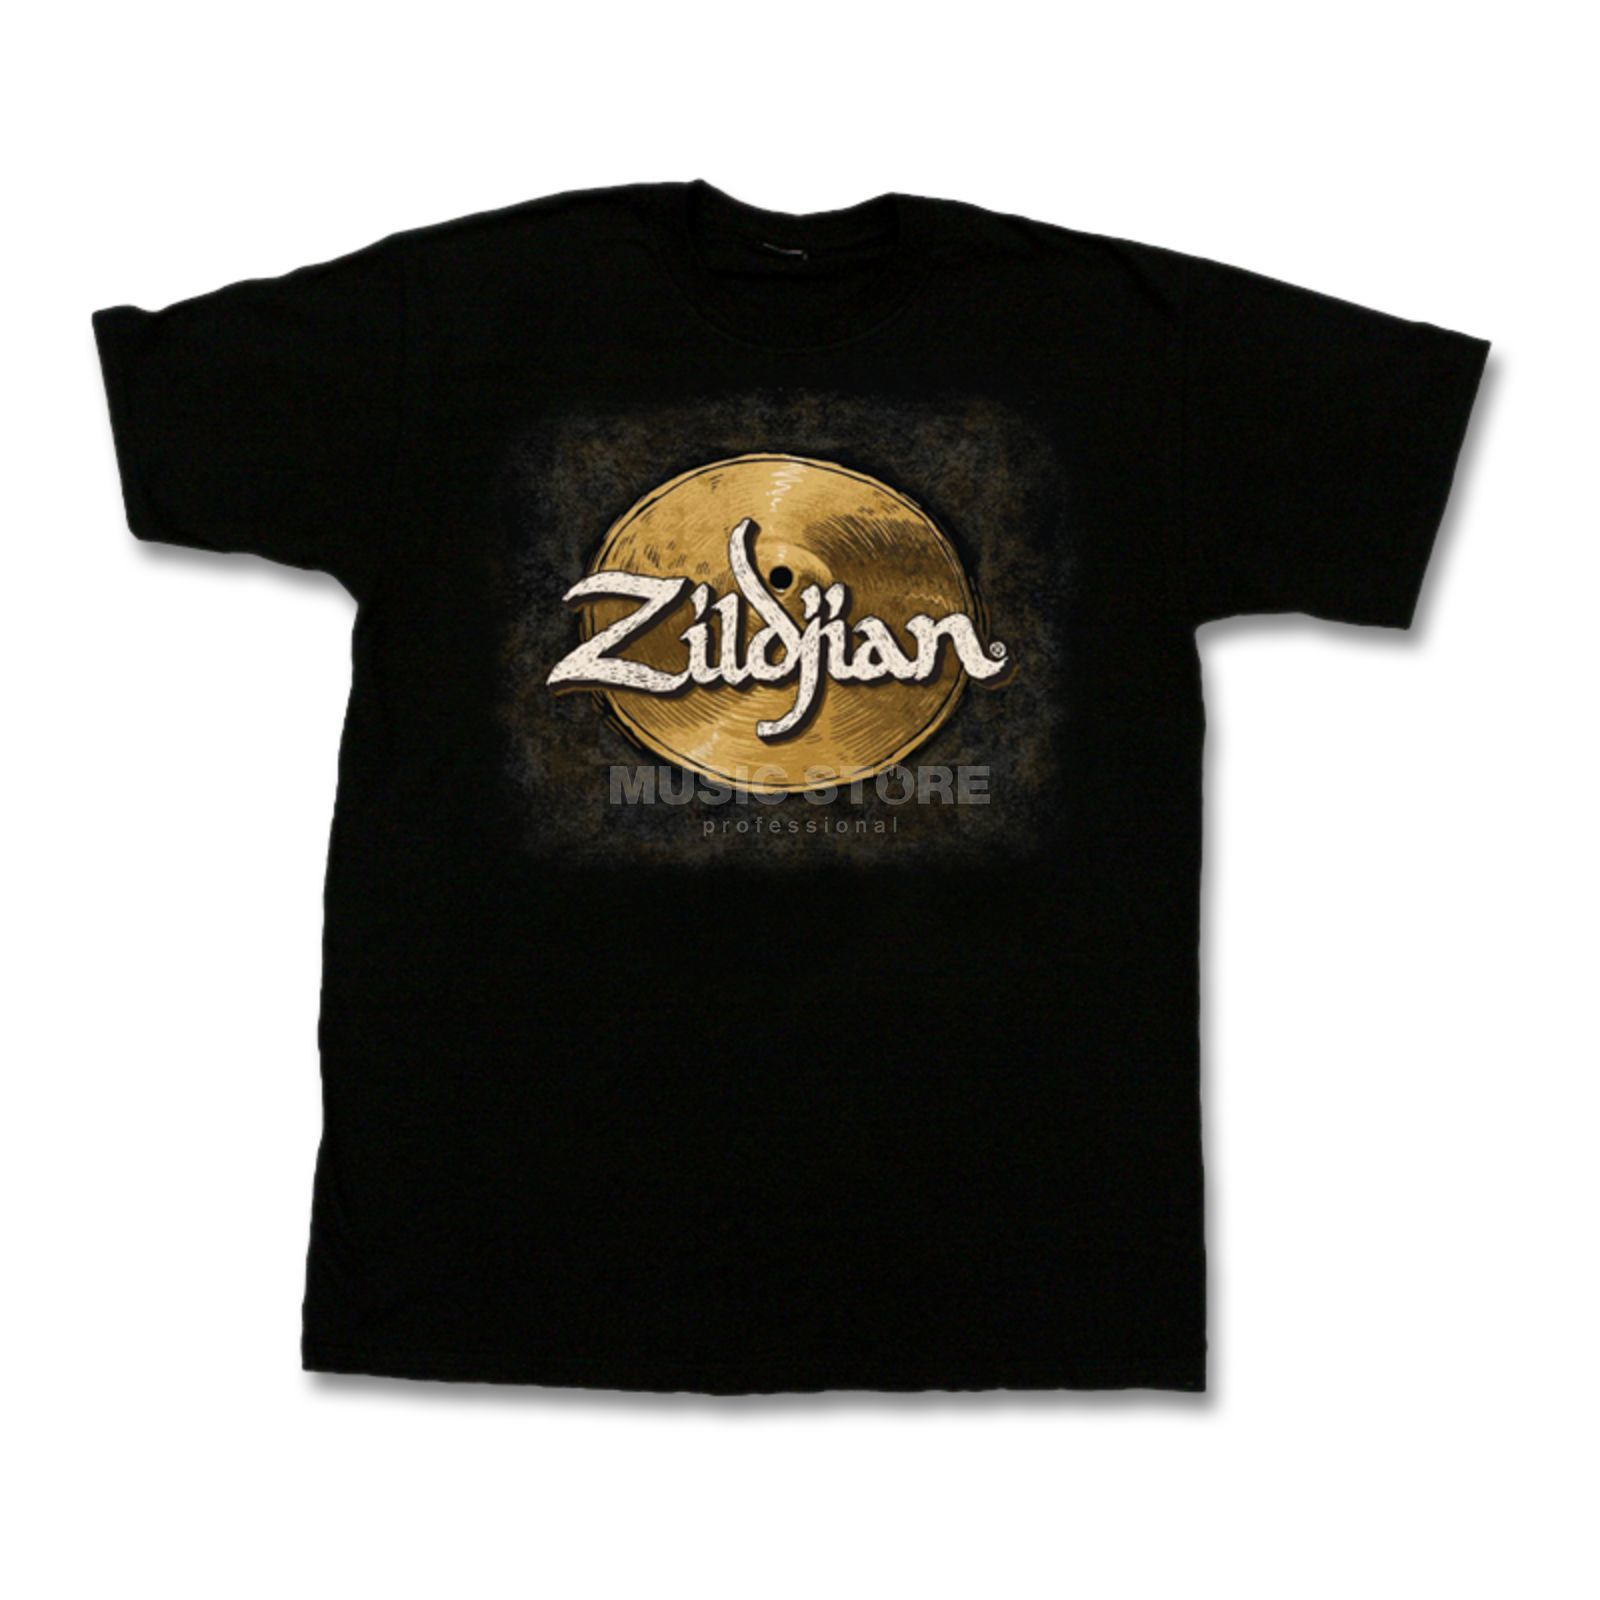 Zildjian T-Shirt Hand-Drawn Black, Small Изображение товара